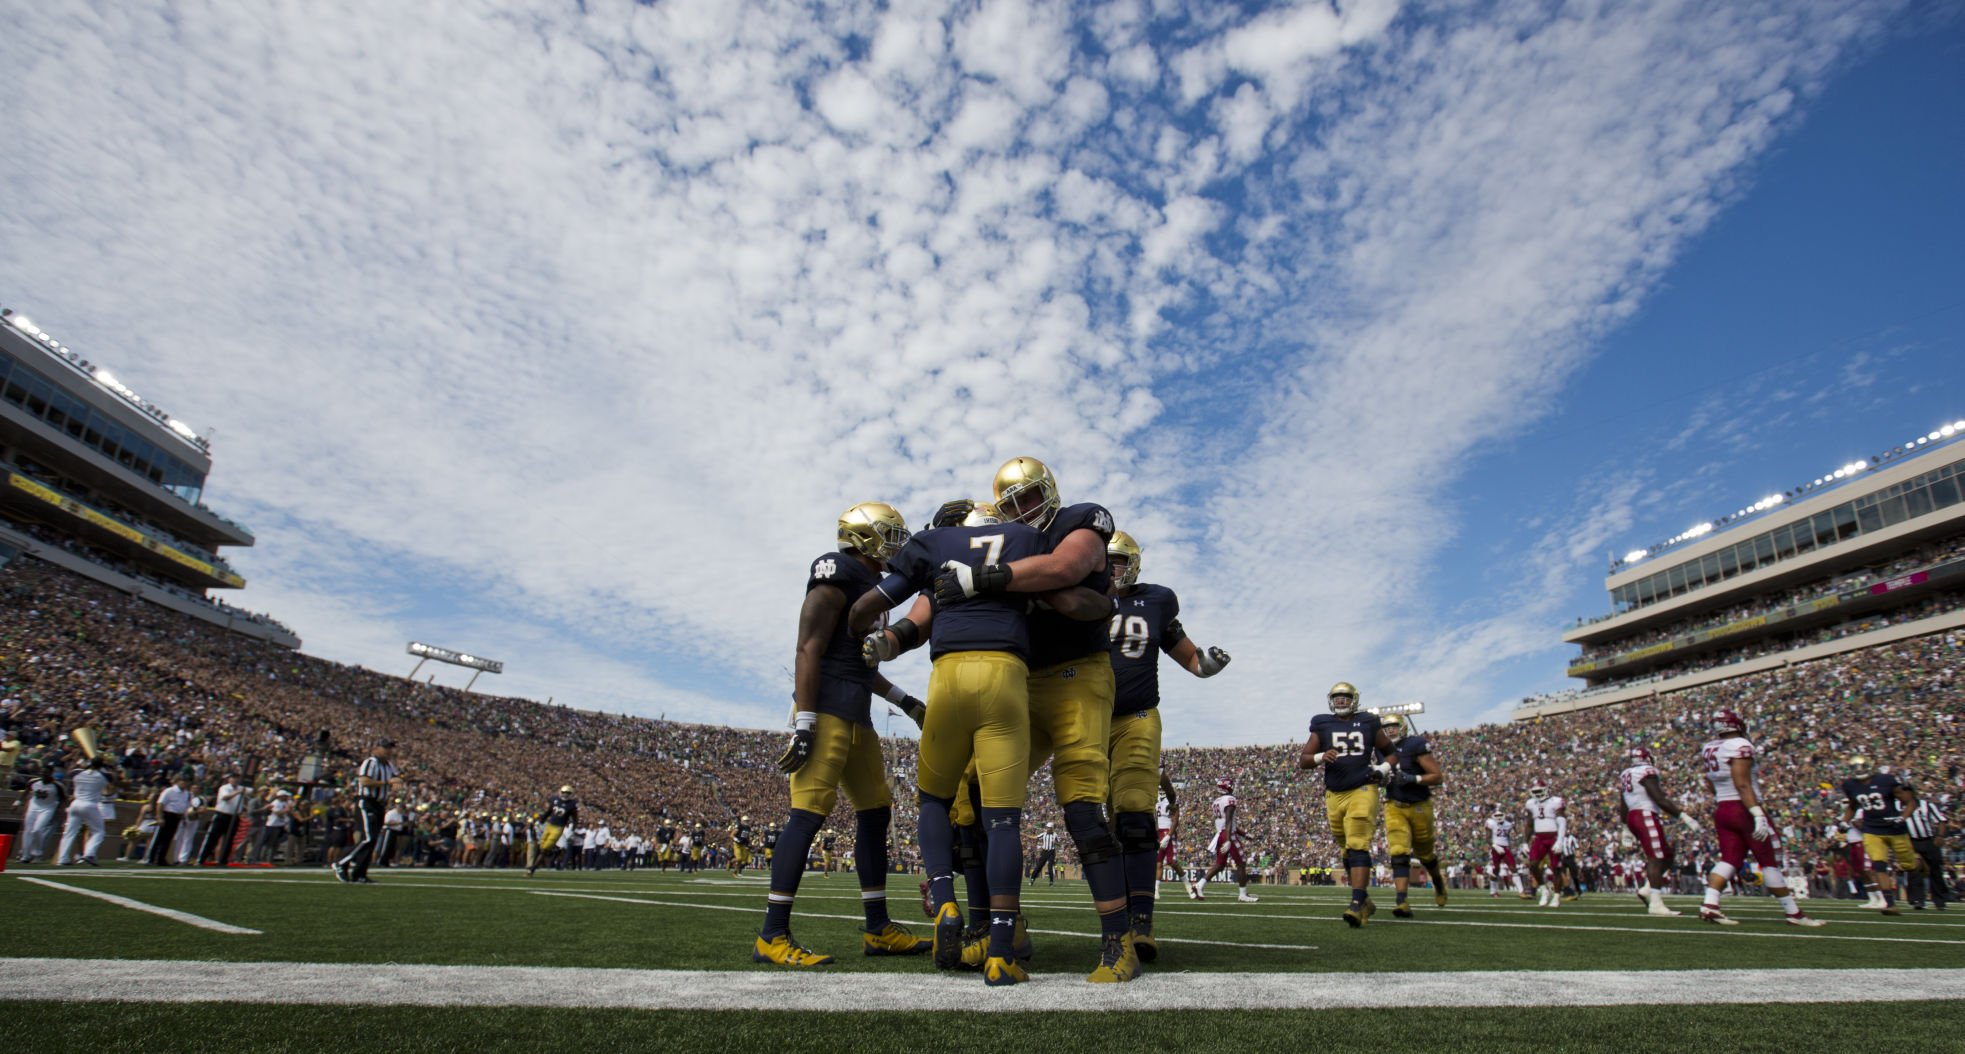 Notre Dame thumps Temple to open football season